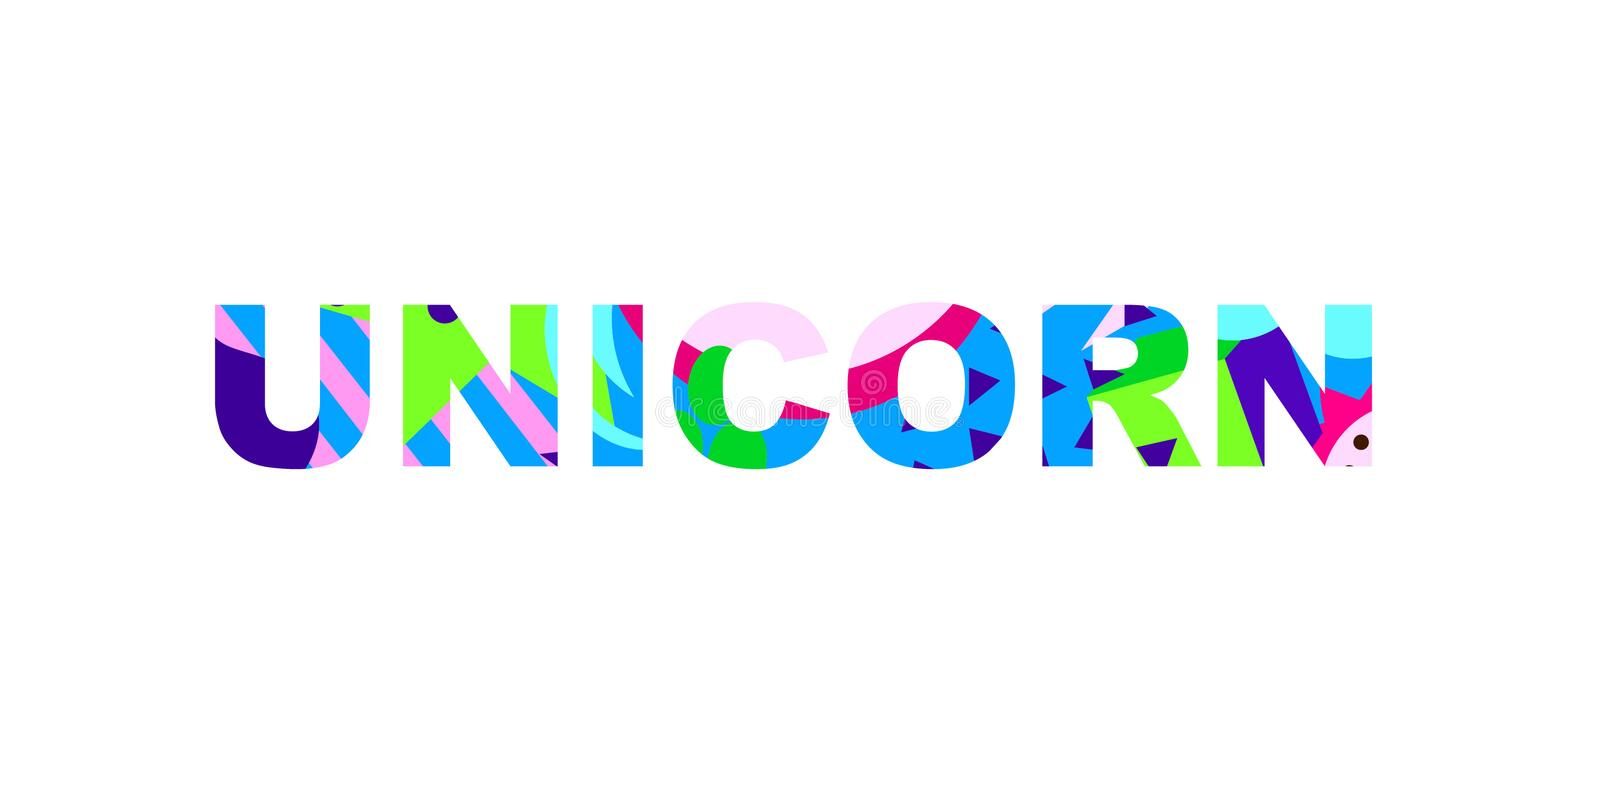 Textural word. Unicorn - inspirational word with a unique bright texture. Good for any printed products, Internet content. Vector illustration royalty free illustration